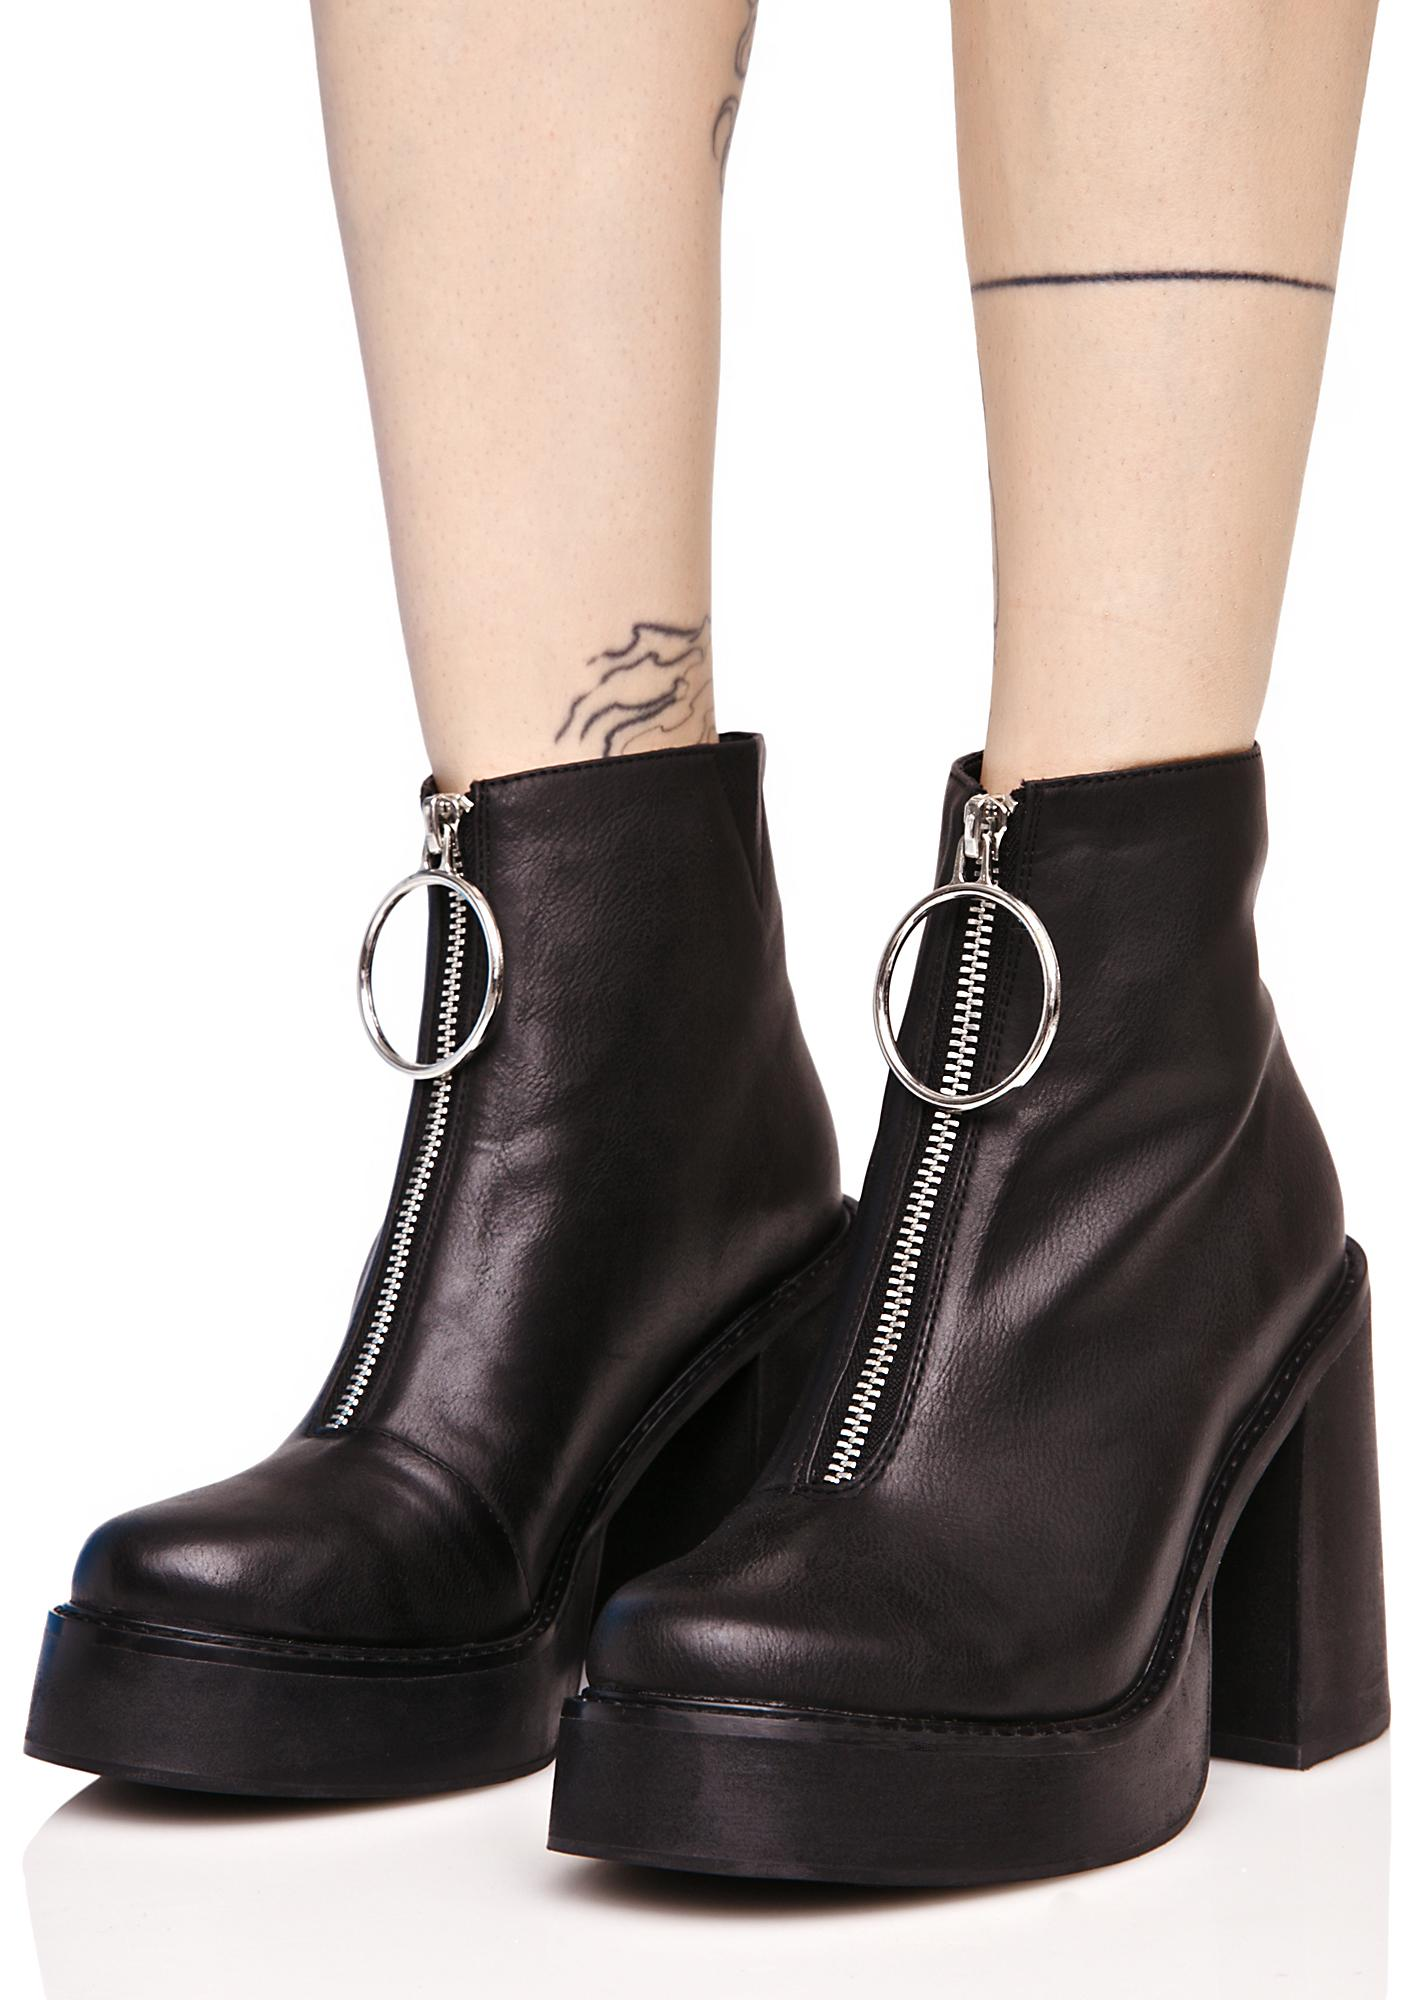 3878dc1d05 Current Mood Franky Platform Boots